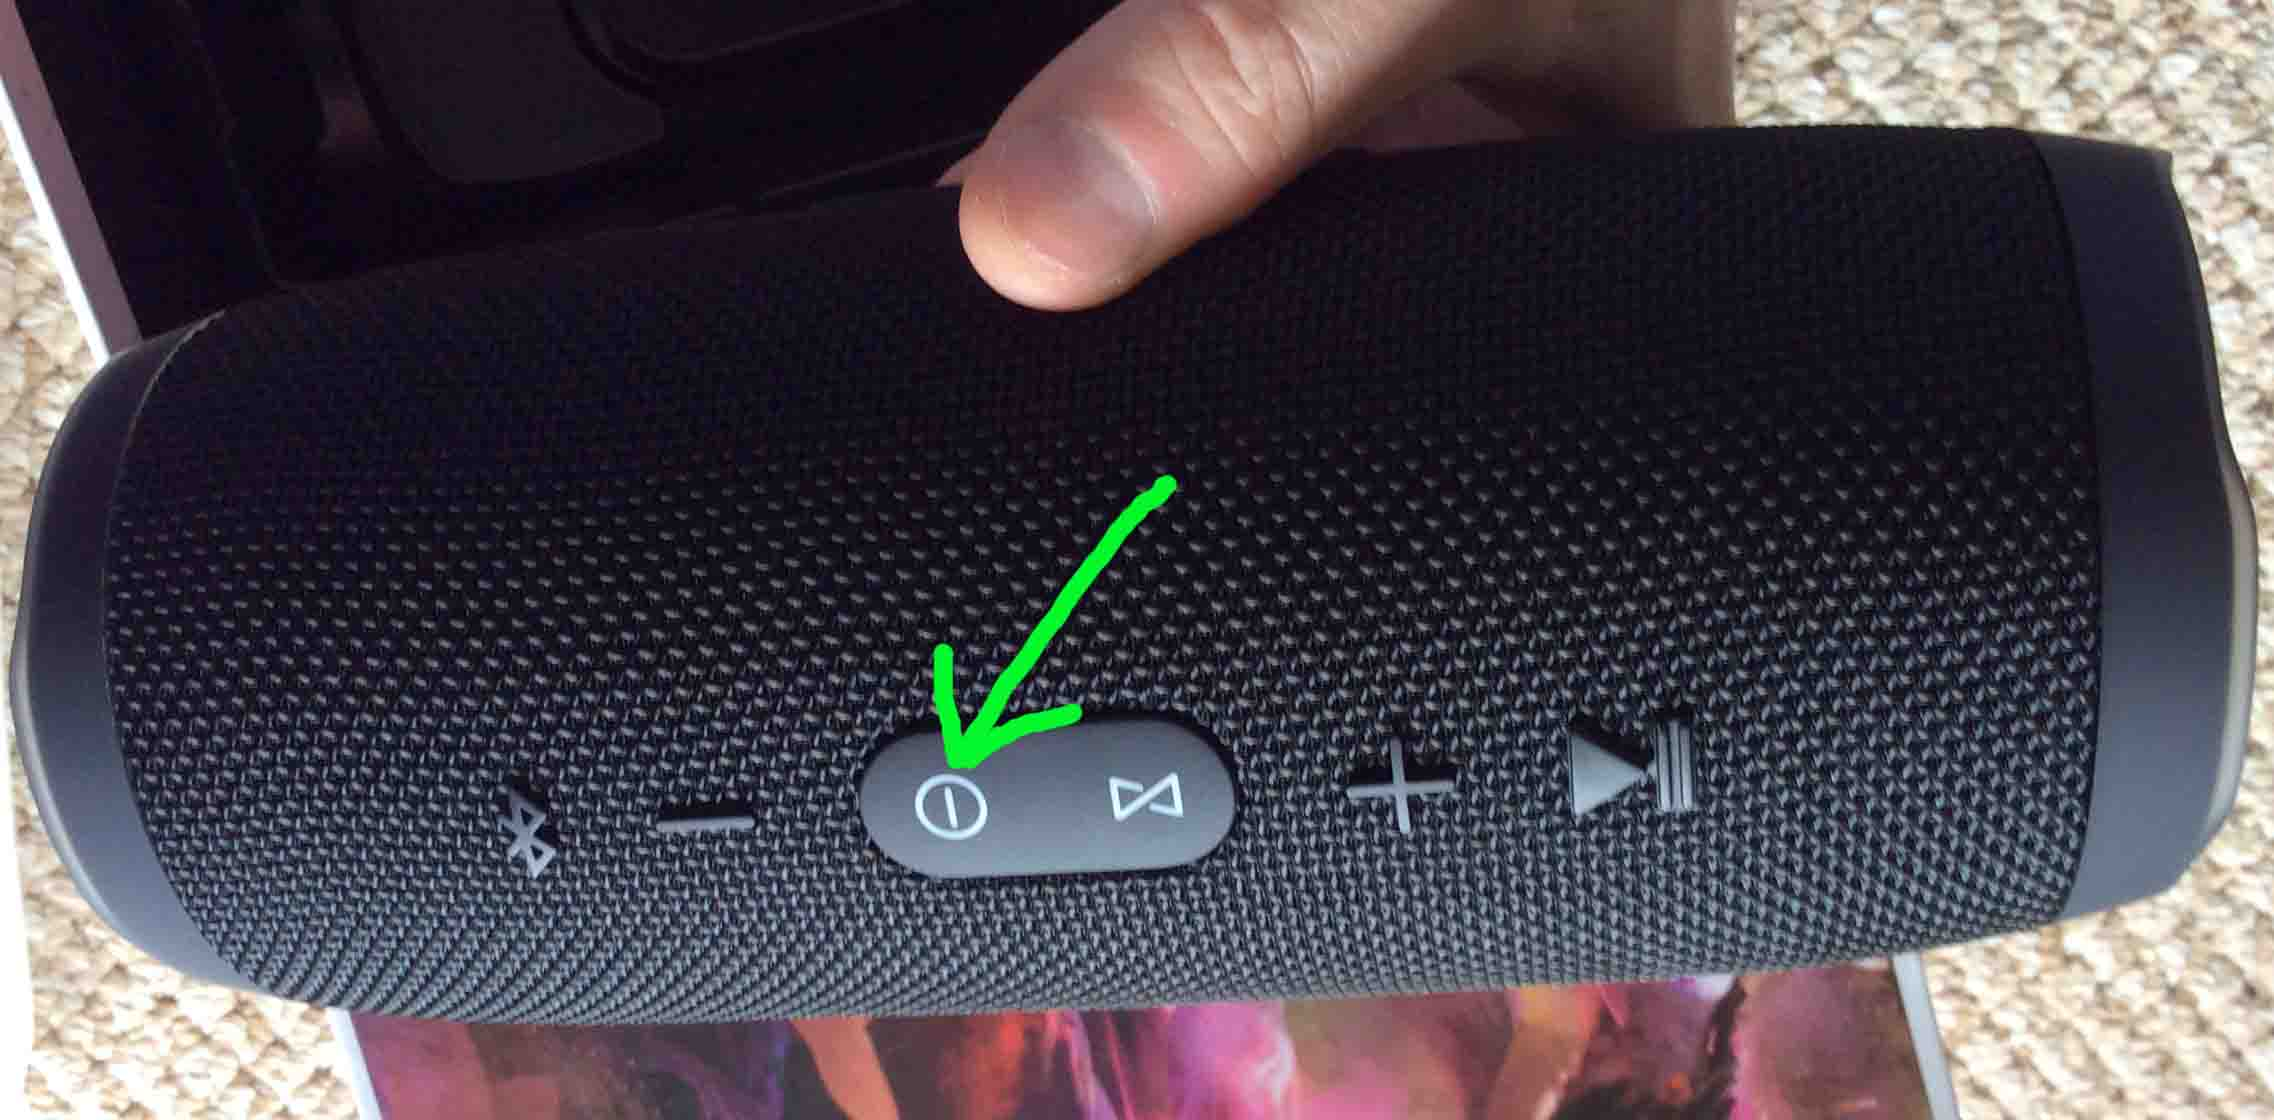 JBL Charge 3 Reset Instructions, How to Factory Reset